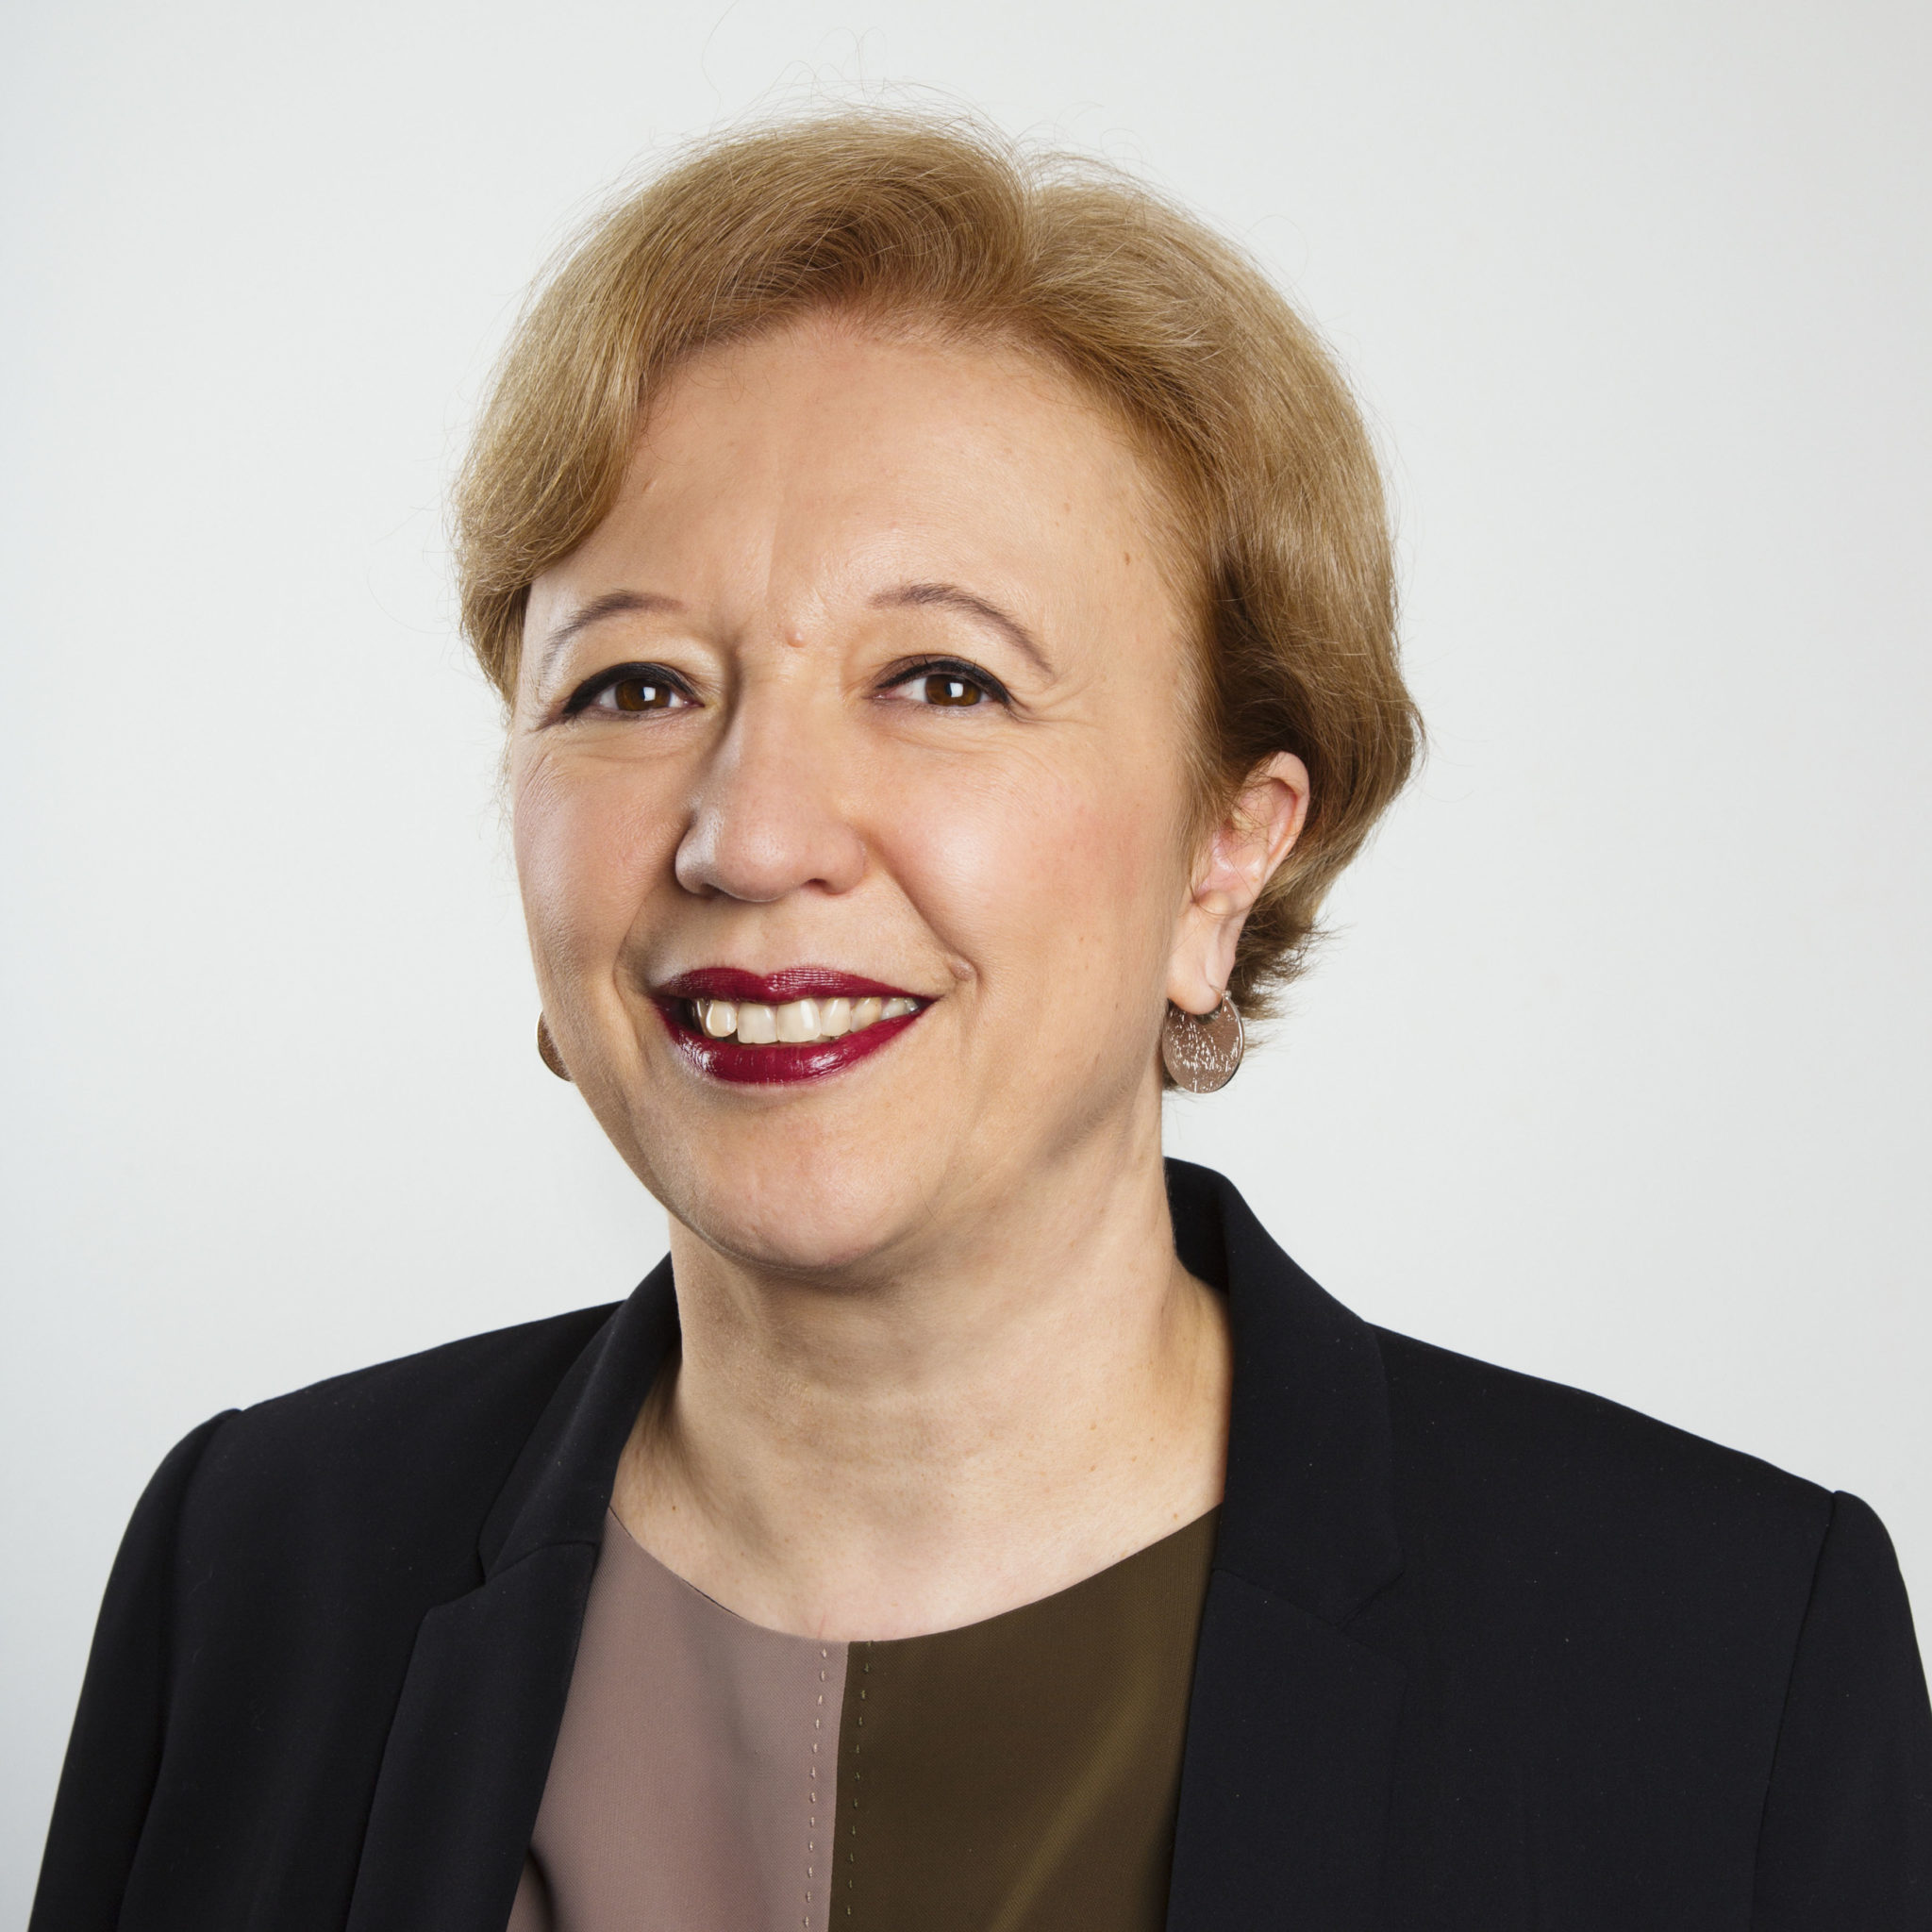 Interview with Virginie d'Enfert Director of Economic, Environmental and International Affairs of the FEBEA